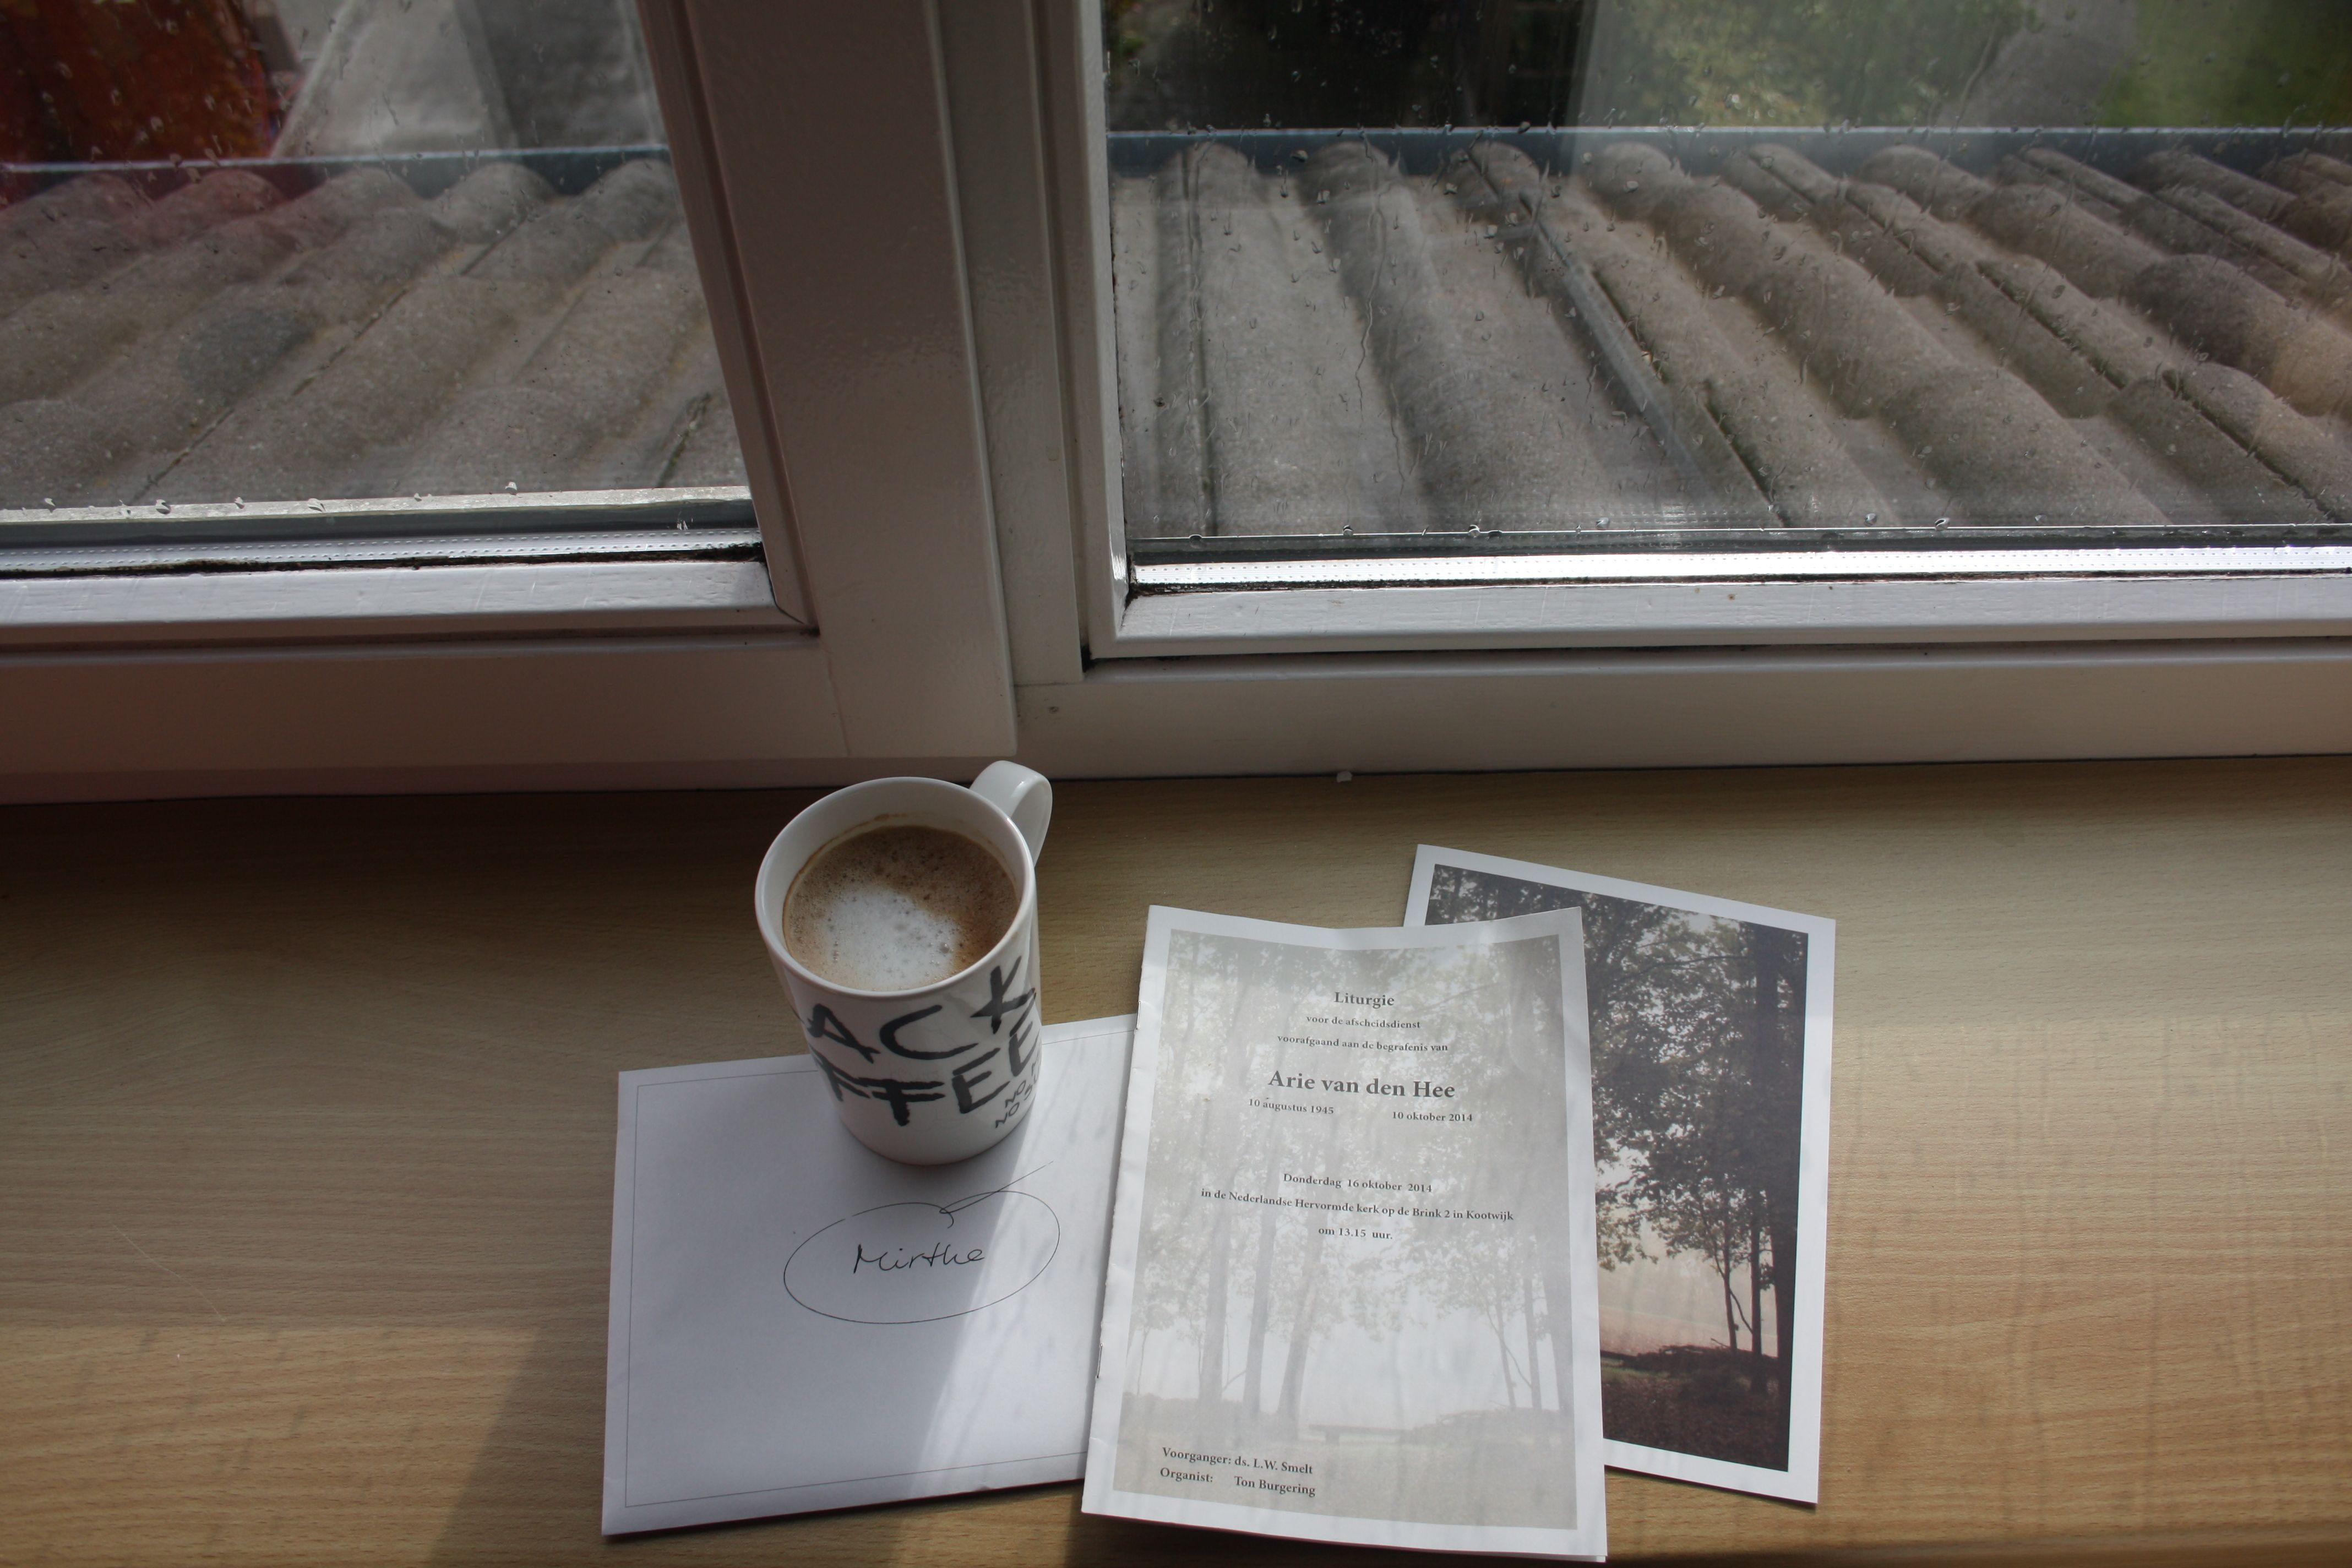 16 October - A dear family member died last week. R.I.P. A liturgy of the ceremonie. I love how you see the rain drops from window on the paper.